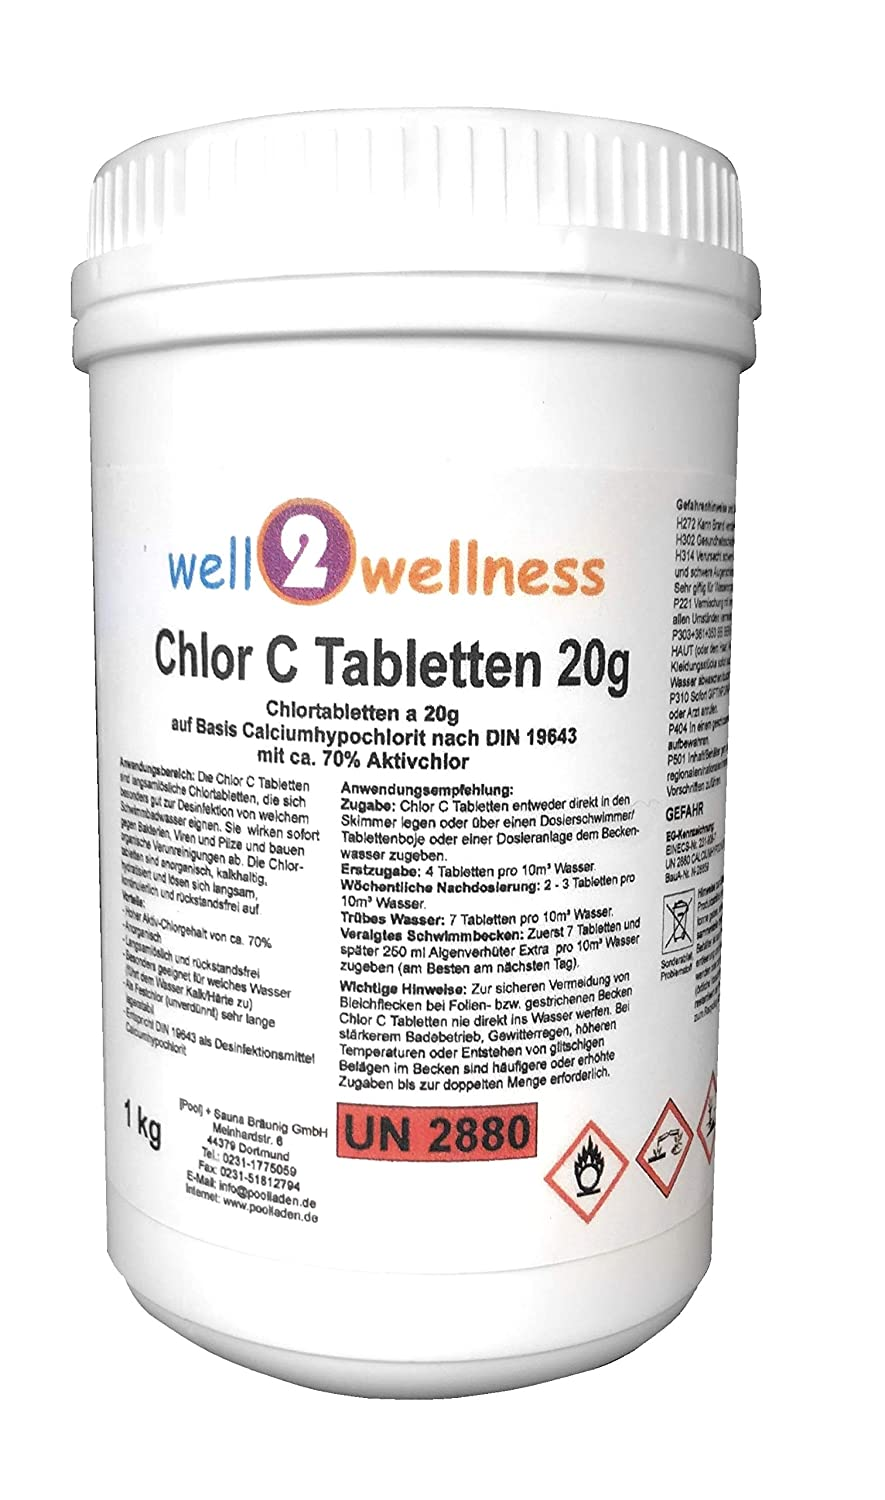 Well2wellness Calciumhypochlorit Chlortabletten Chlor C Tabletten